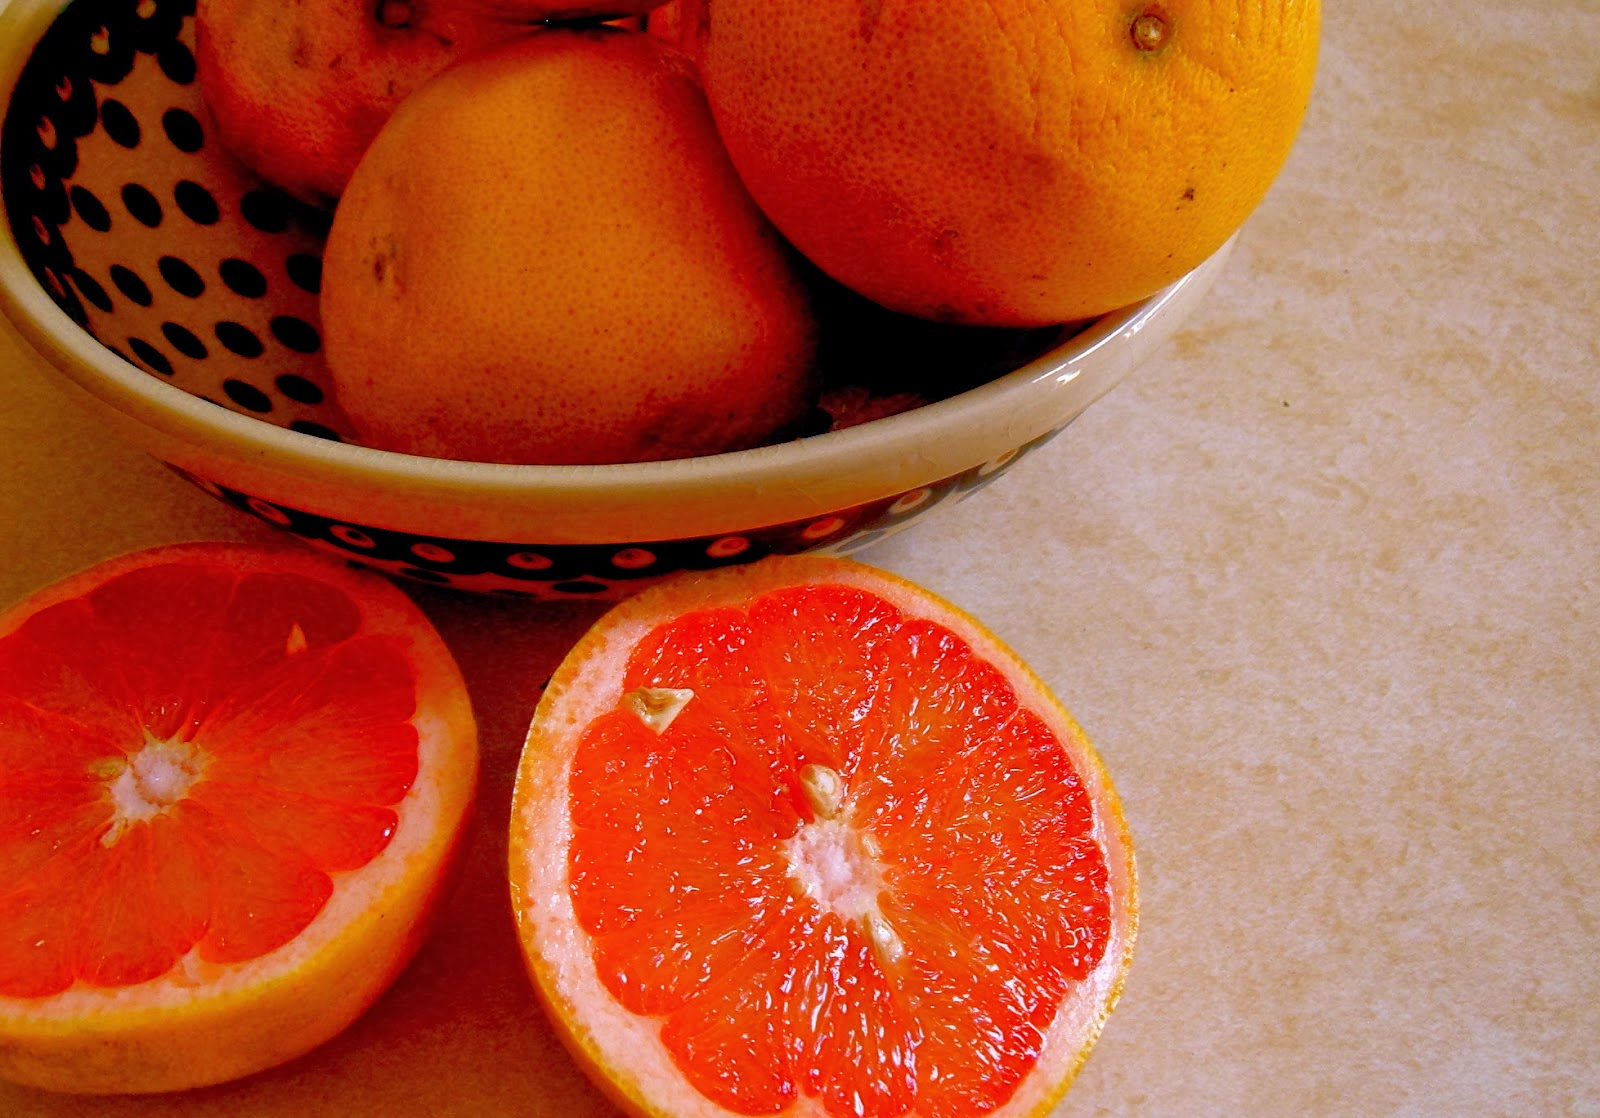 Ruby Red Grapefruit Time